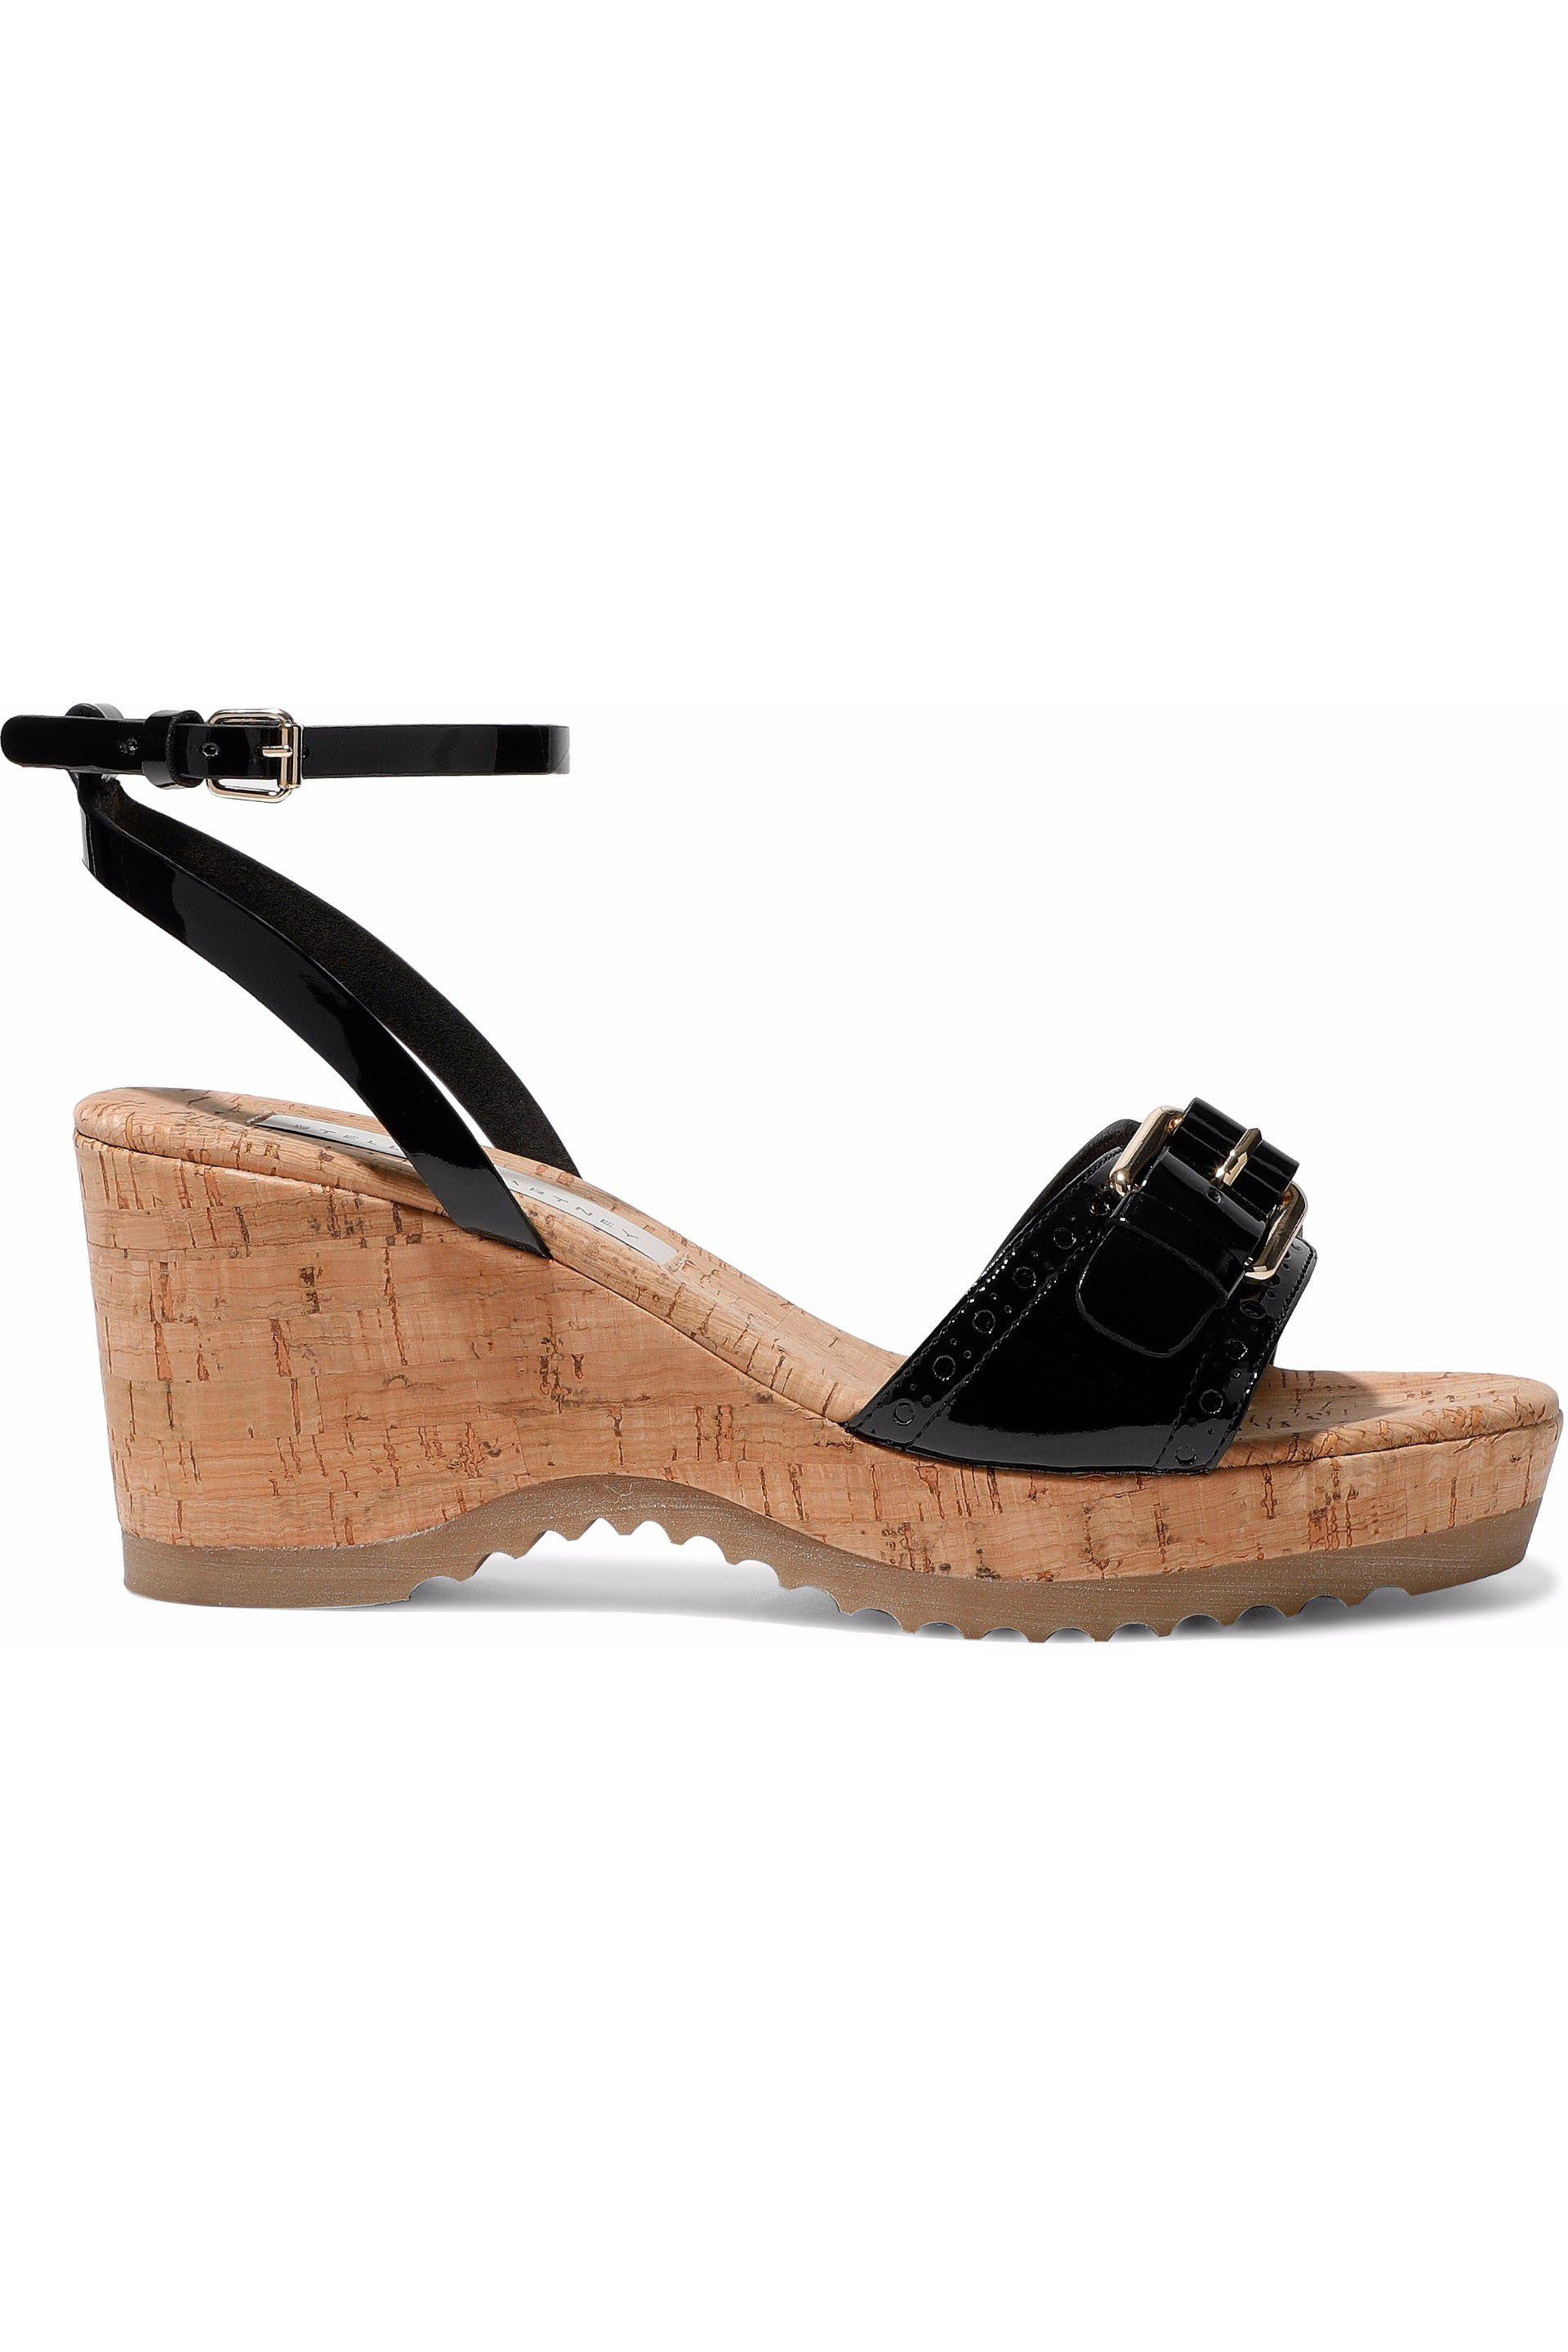 61d0c8e326670 Stella McCartney Buckled Faux Patent-leather And Cork Wedge Sandals ...